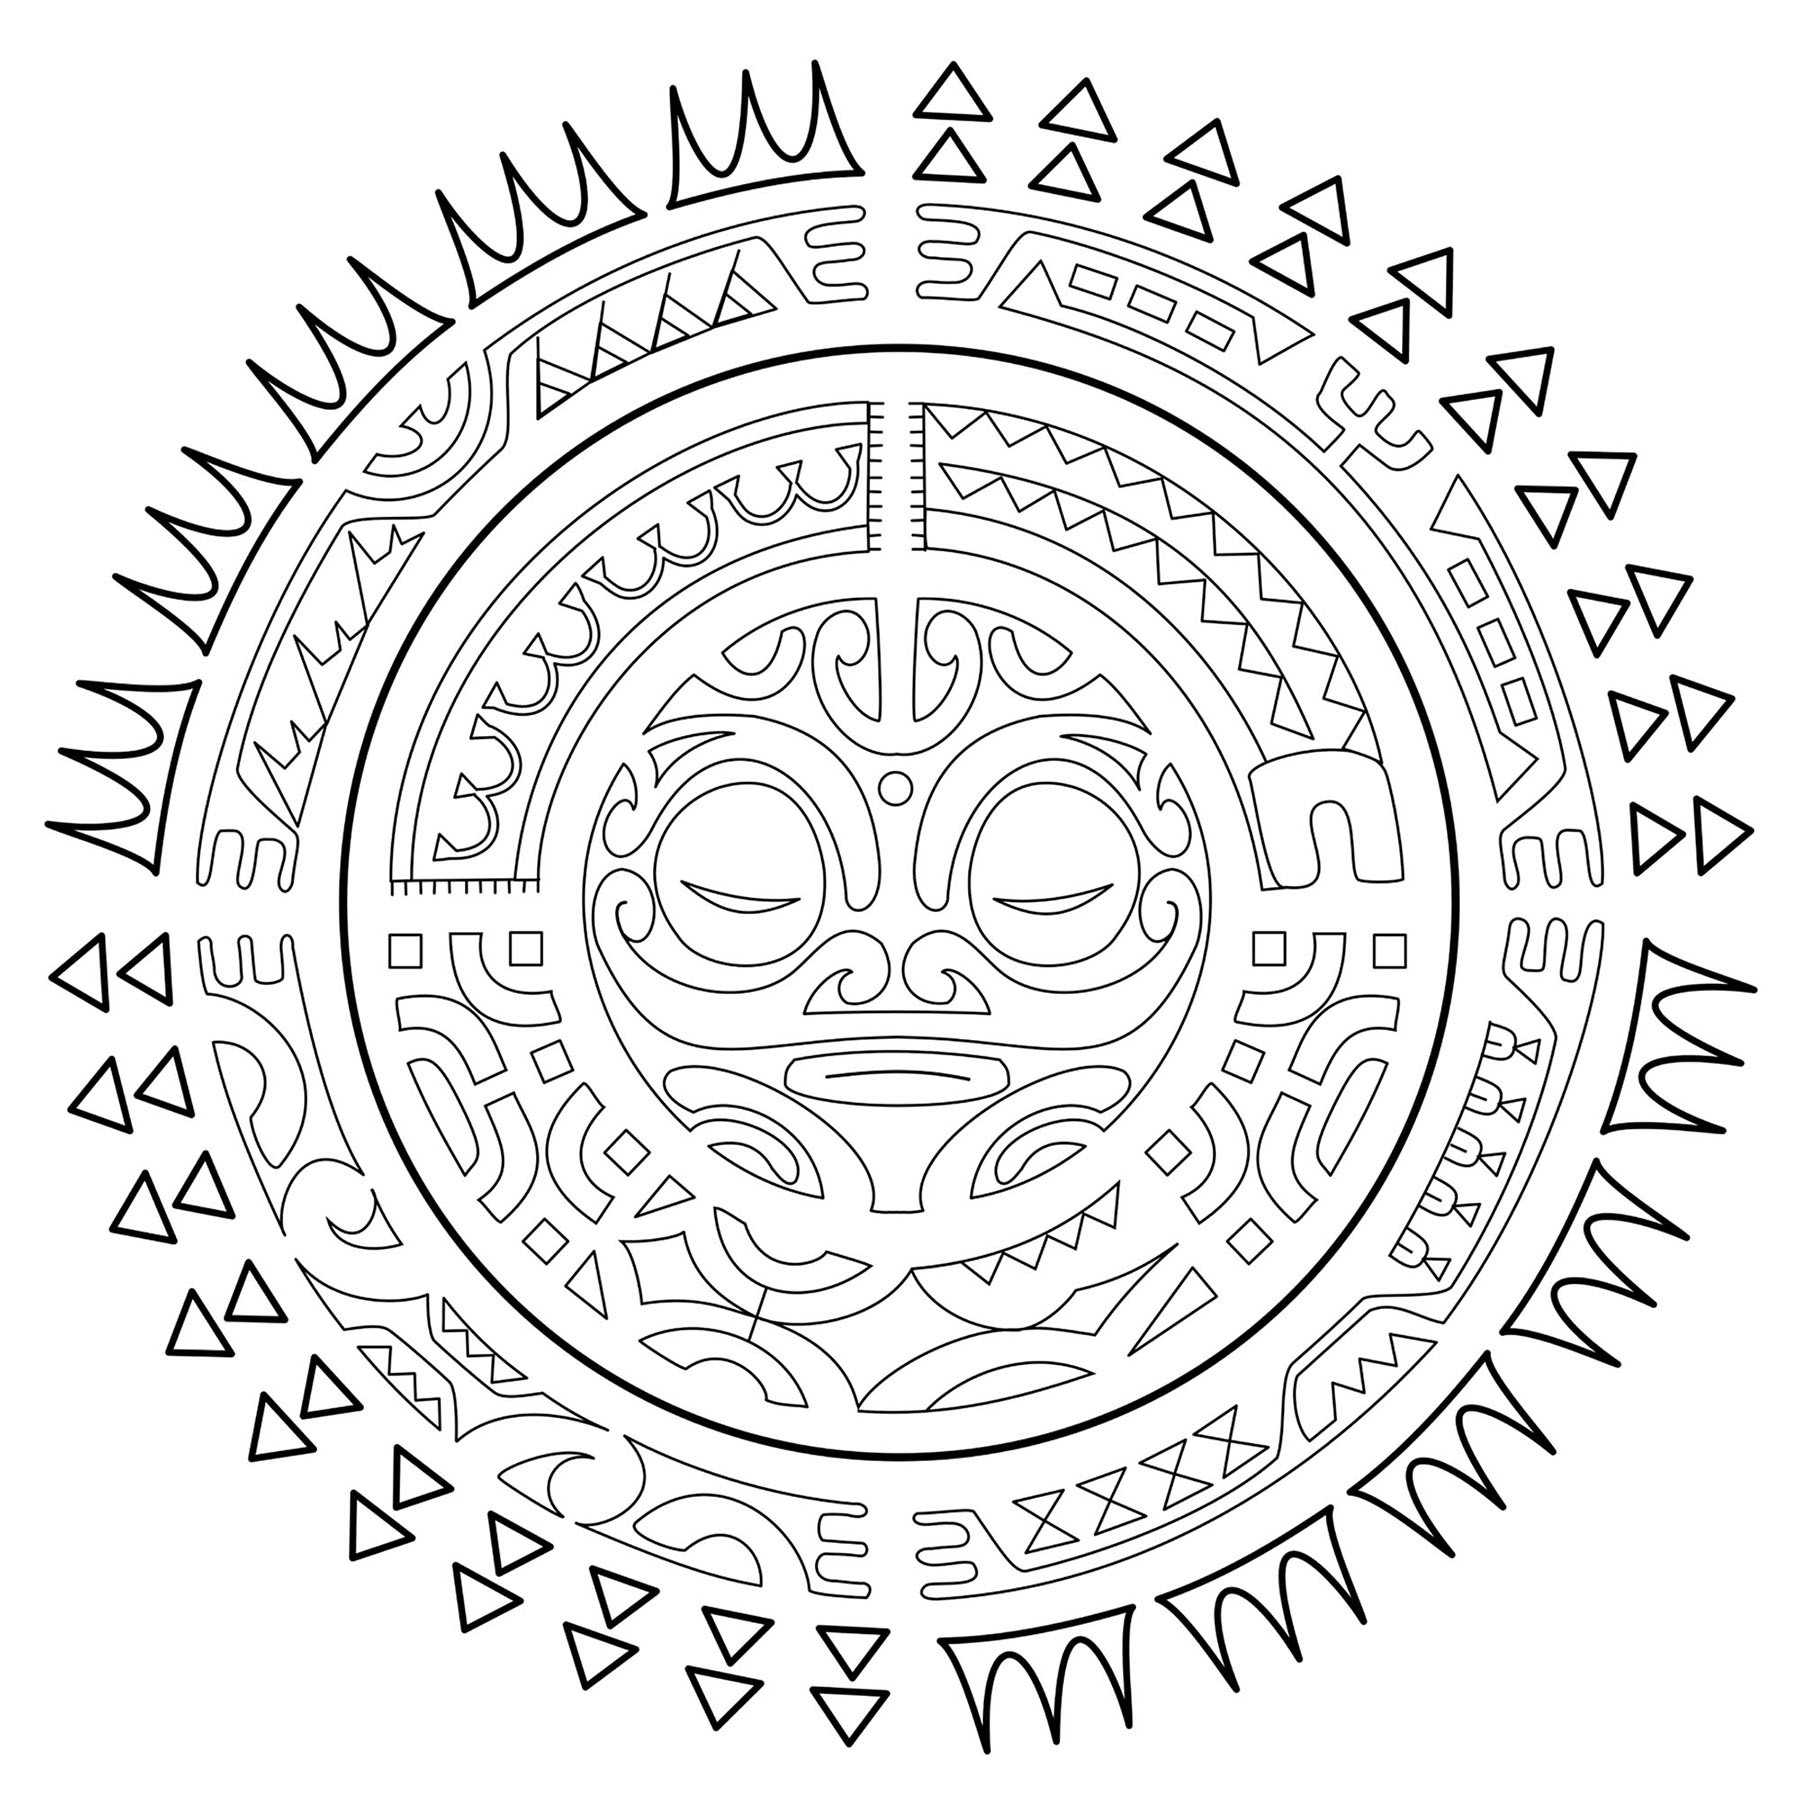 "The sun is a universal symbol of eternity and life. In Polynesian cultures it is also regarded as a symbol of health, welfare, success, joy, purity, and fertility. It's considered a male symbol, associated with fire. The rising sun symbolizes a fresh start, new life, and growth, while the setting sun can be a symbol of rest and peace, with the continuous cycle of day and night symbolizing eternity. The sun in this tattoo is a symbol of protection, like the guardian tiki in the center of the design. The elements surrounding it represent protection from adversities (symbolized by the moray eel), cooperation, strength, and good luck in order to achieve stability, prosperity, and unity.  From the book Polynesian Tattoos: 42 Modern Tribal Designs to Color and Explore by Italian tattoo artist and author, Roberto ""GiErre"" Gemori. Product page : www.shambhala.com/polynesian-tattoos.html Author's website: Tattootribes.com"